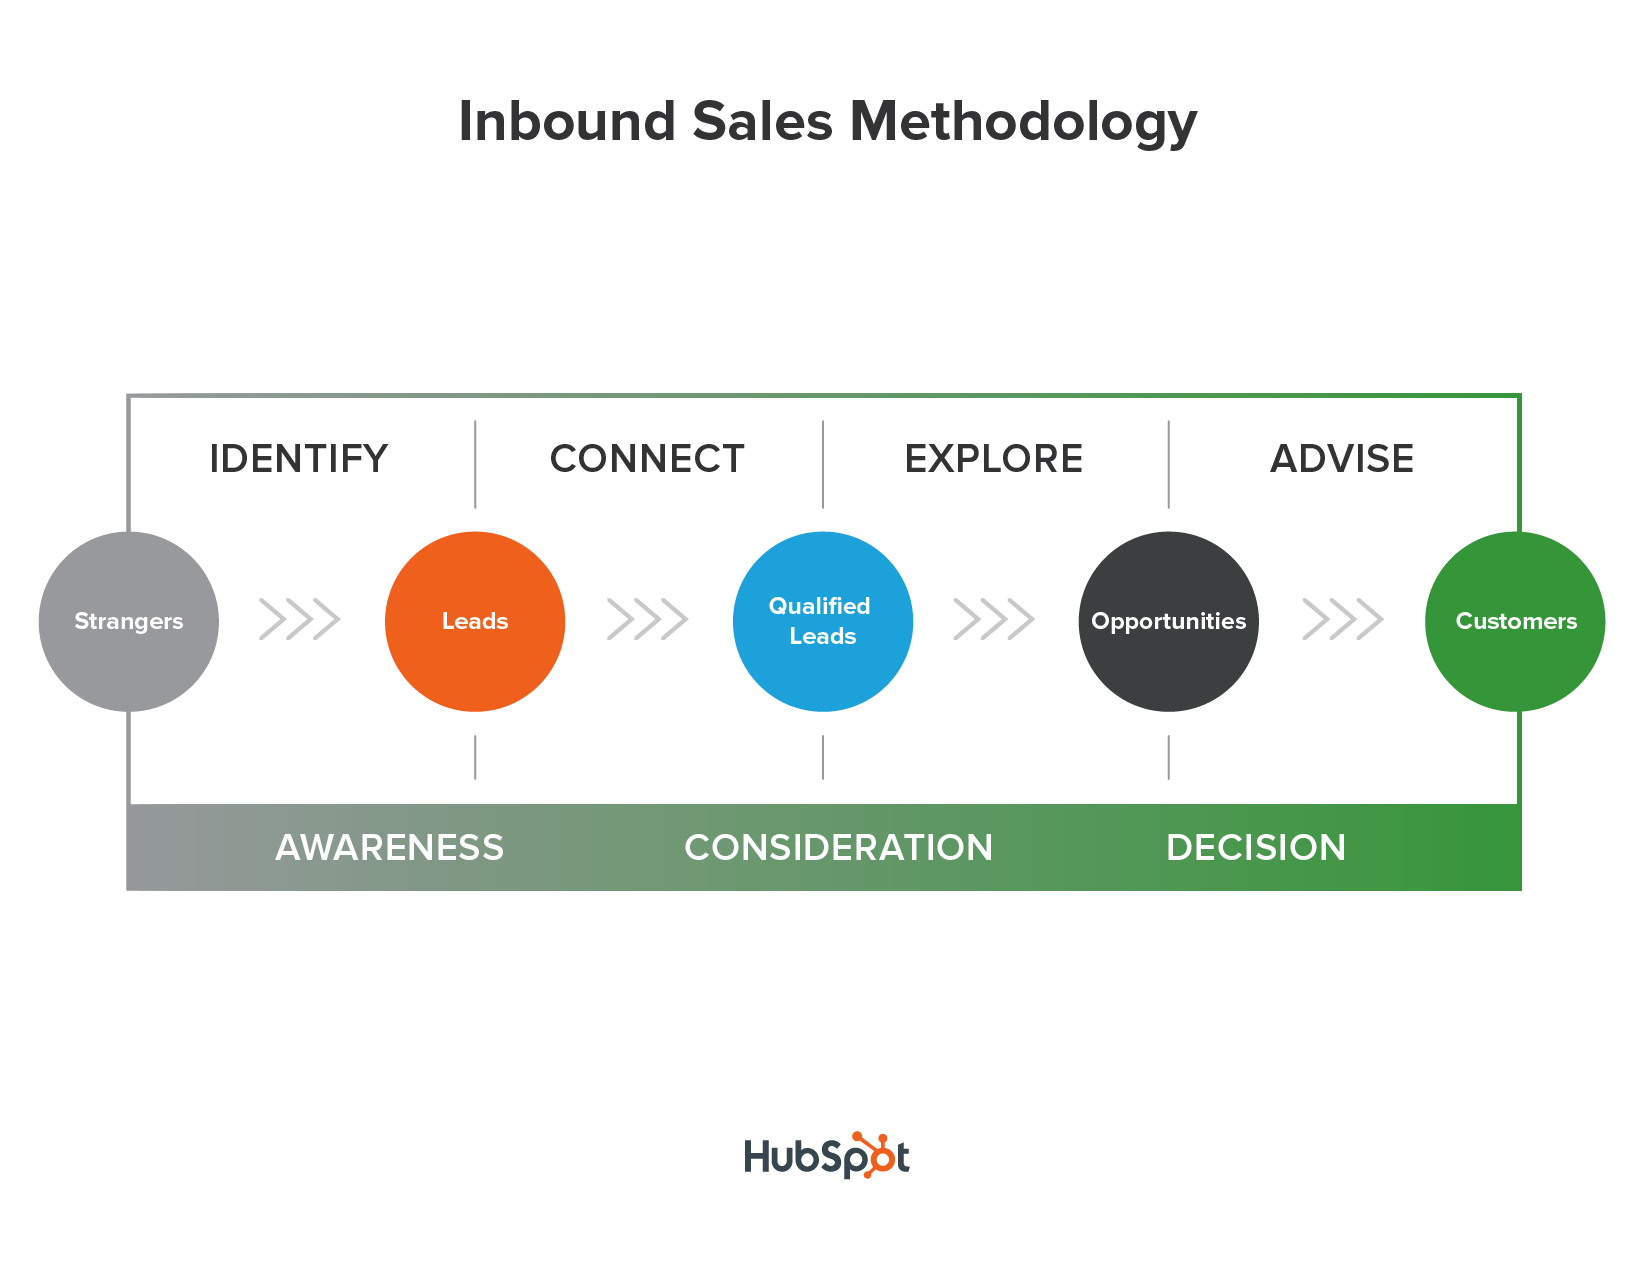 Hubspot_sales_methodology-01_11.54.57.png